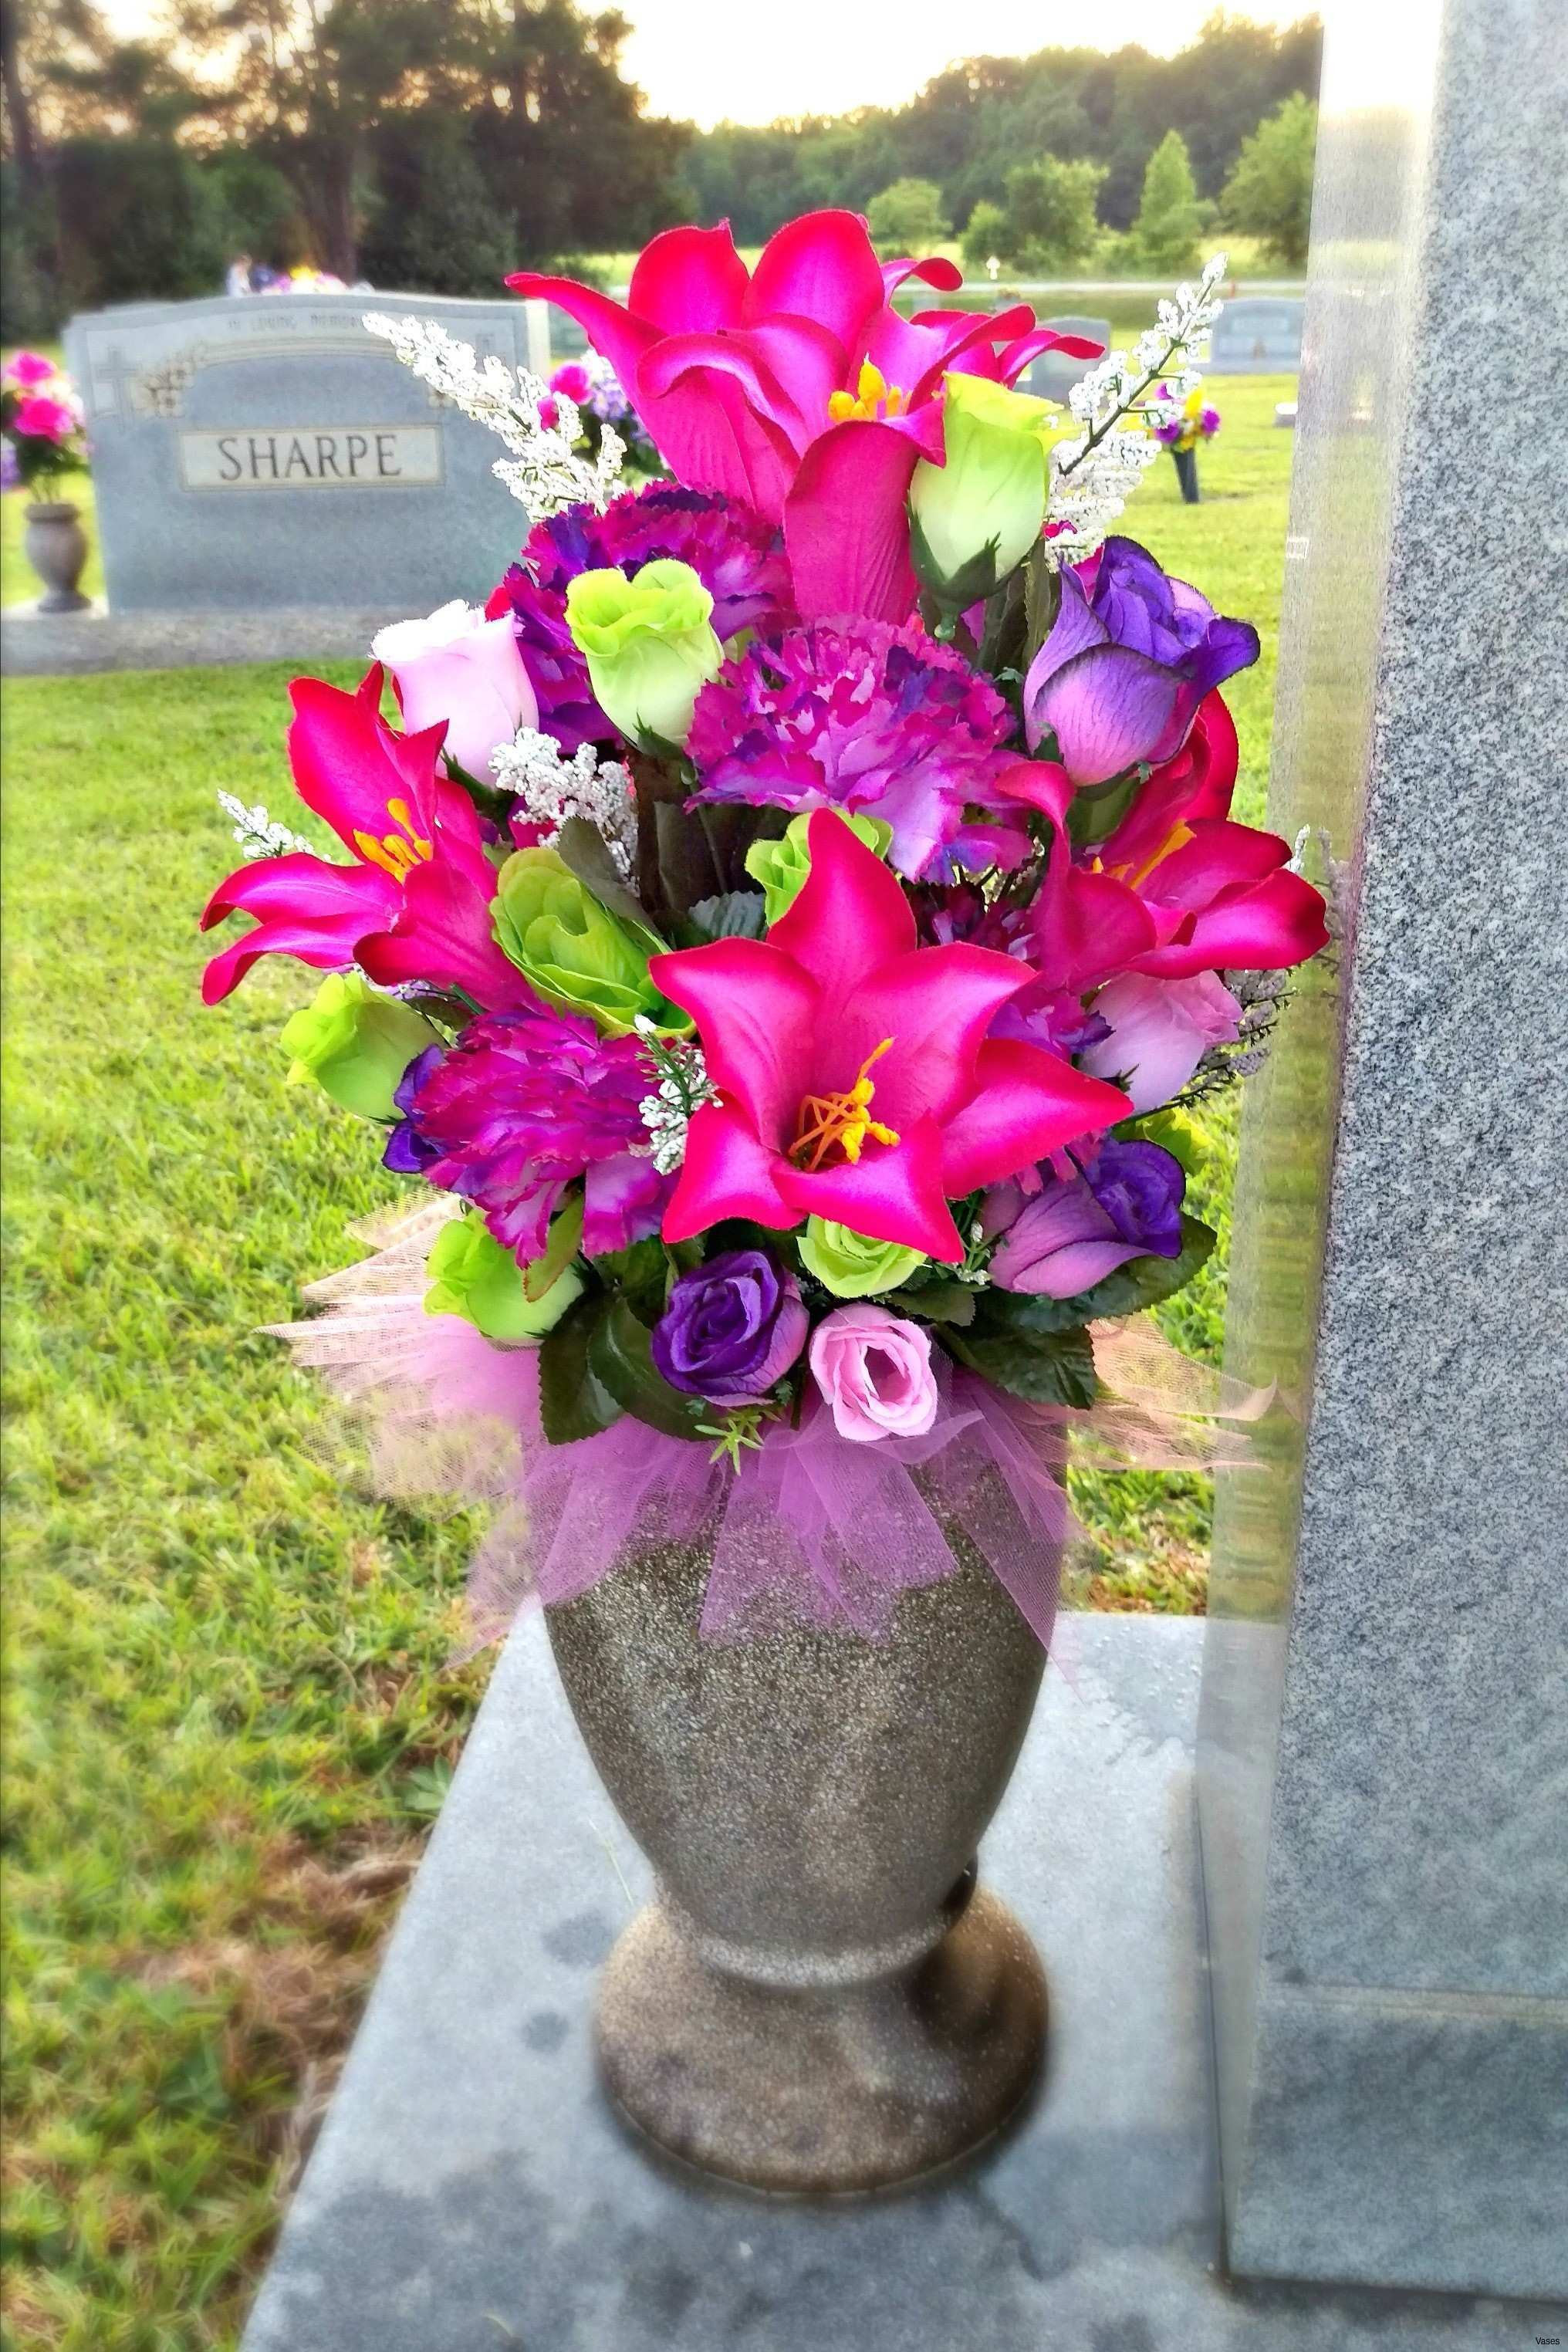 rose bouquet in vase of buy rose bushes best of vases grave flower vase cemetery within buy rose bushes best of vases grave flower vase cemetery informationi 0d in ground holders